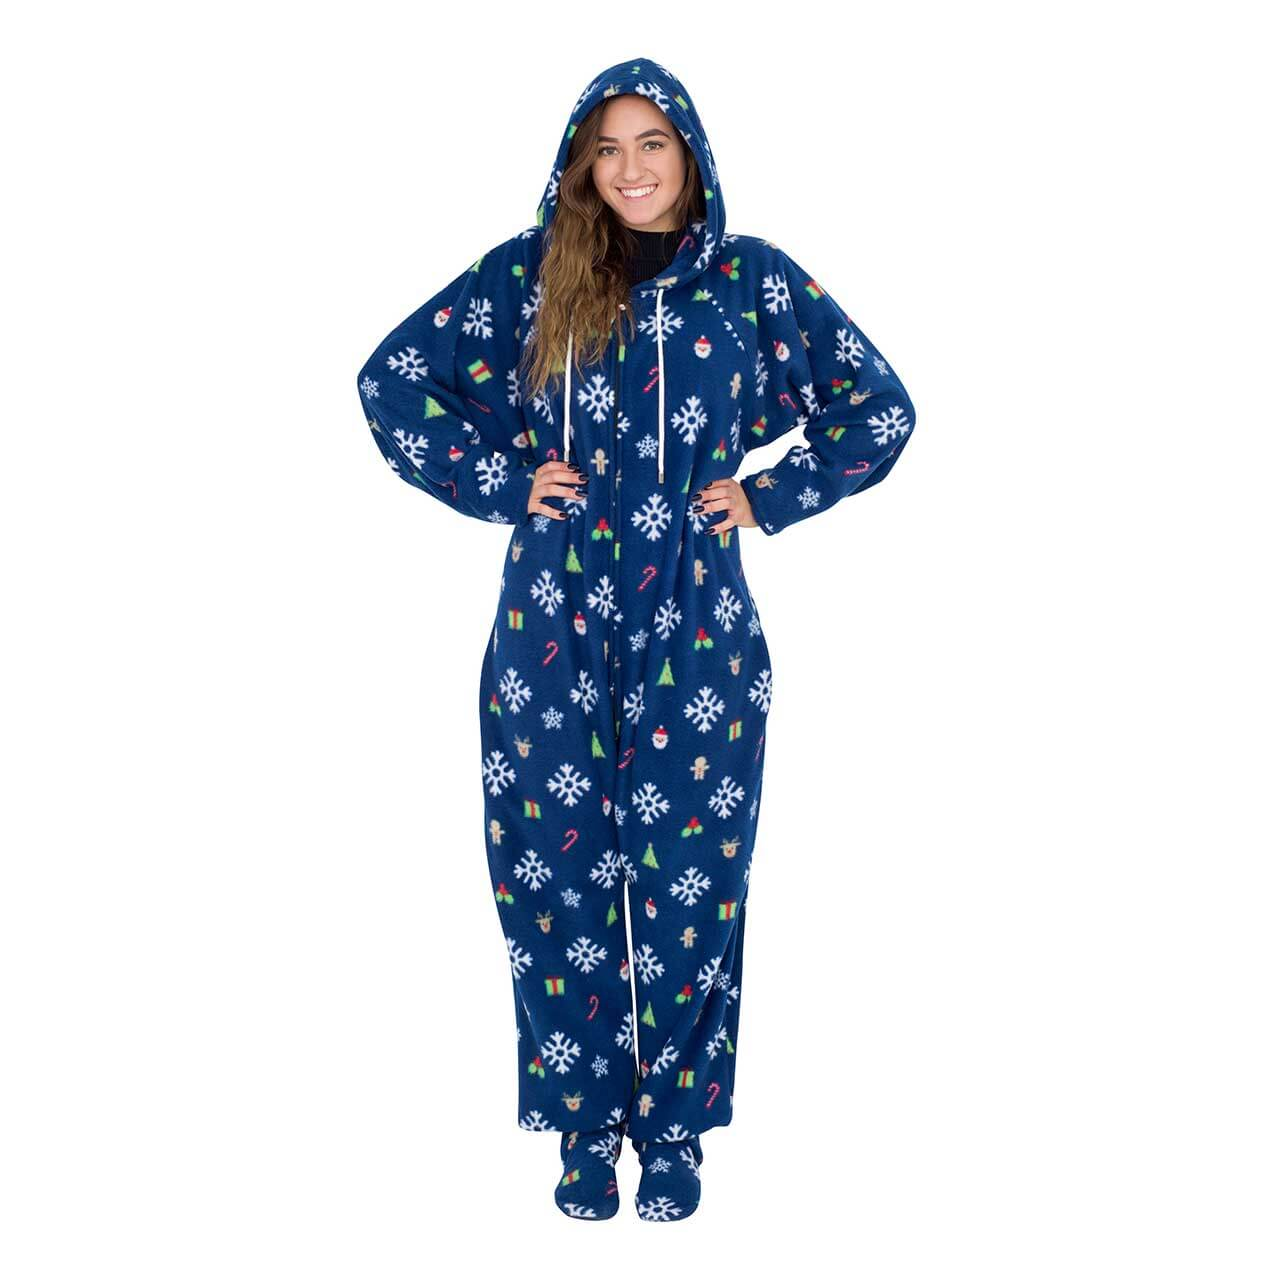 d8f287b7ee24 Snowflakes and Reindeer Navy Ugly Christmas Pajama Suit with Hood